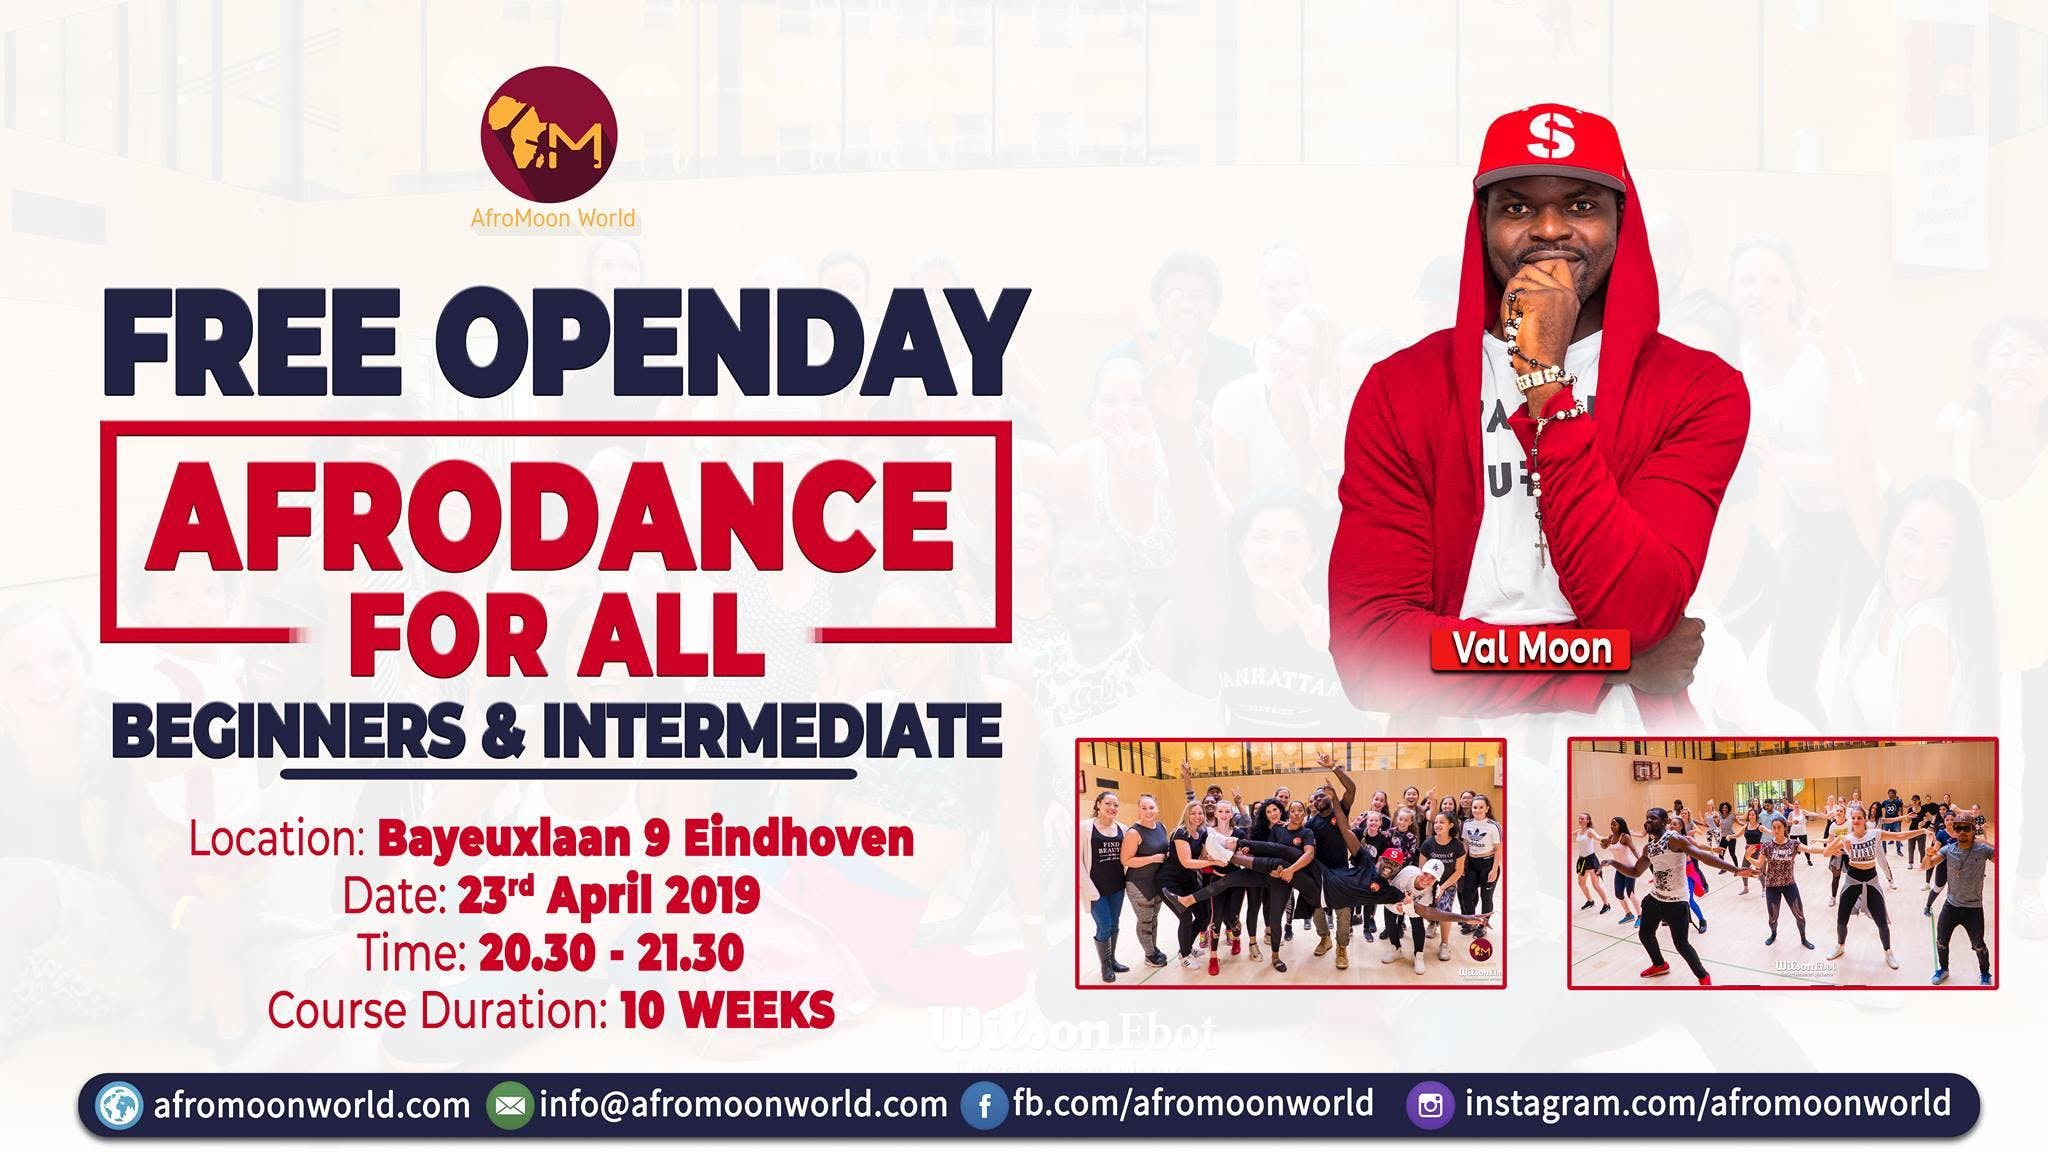 FREE Afrodance Open days in Eindhoven